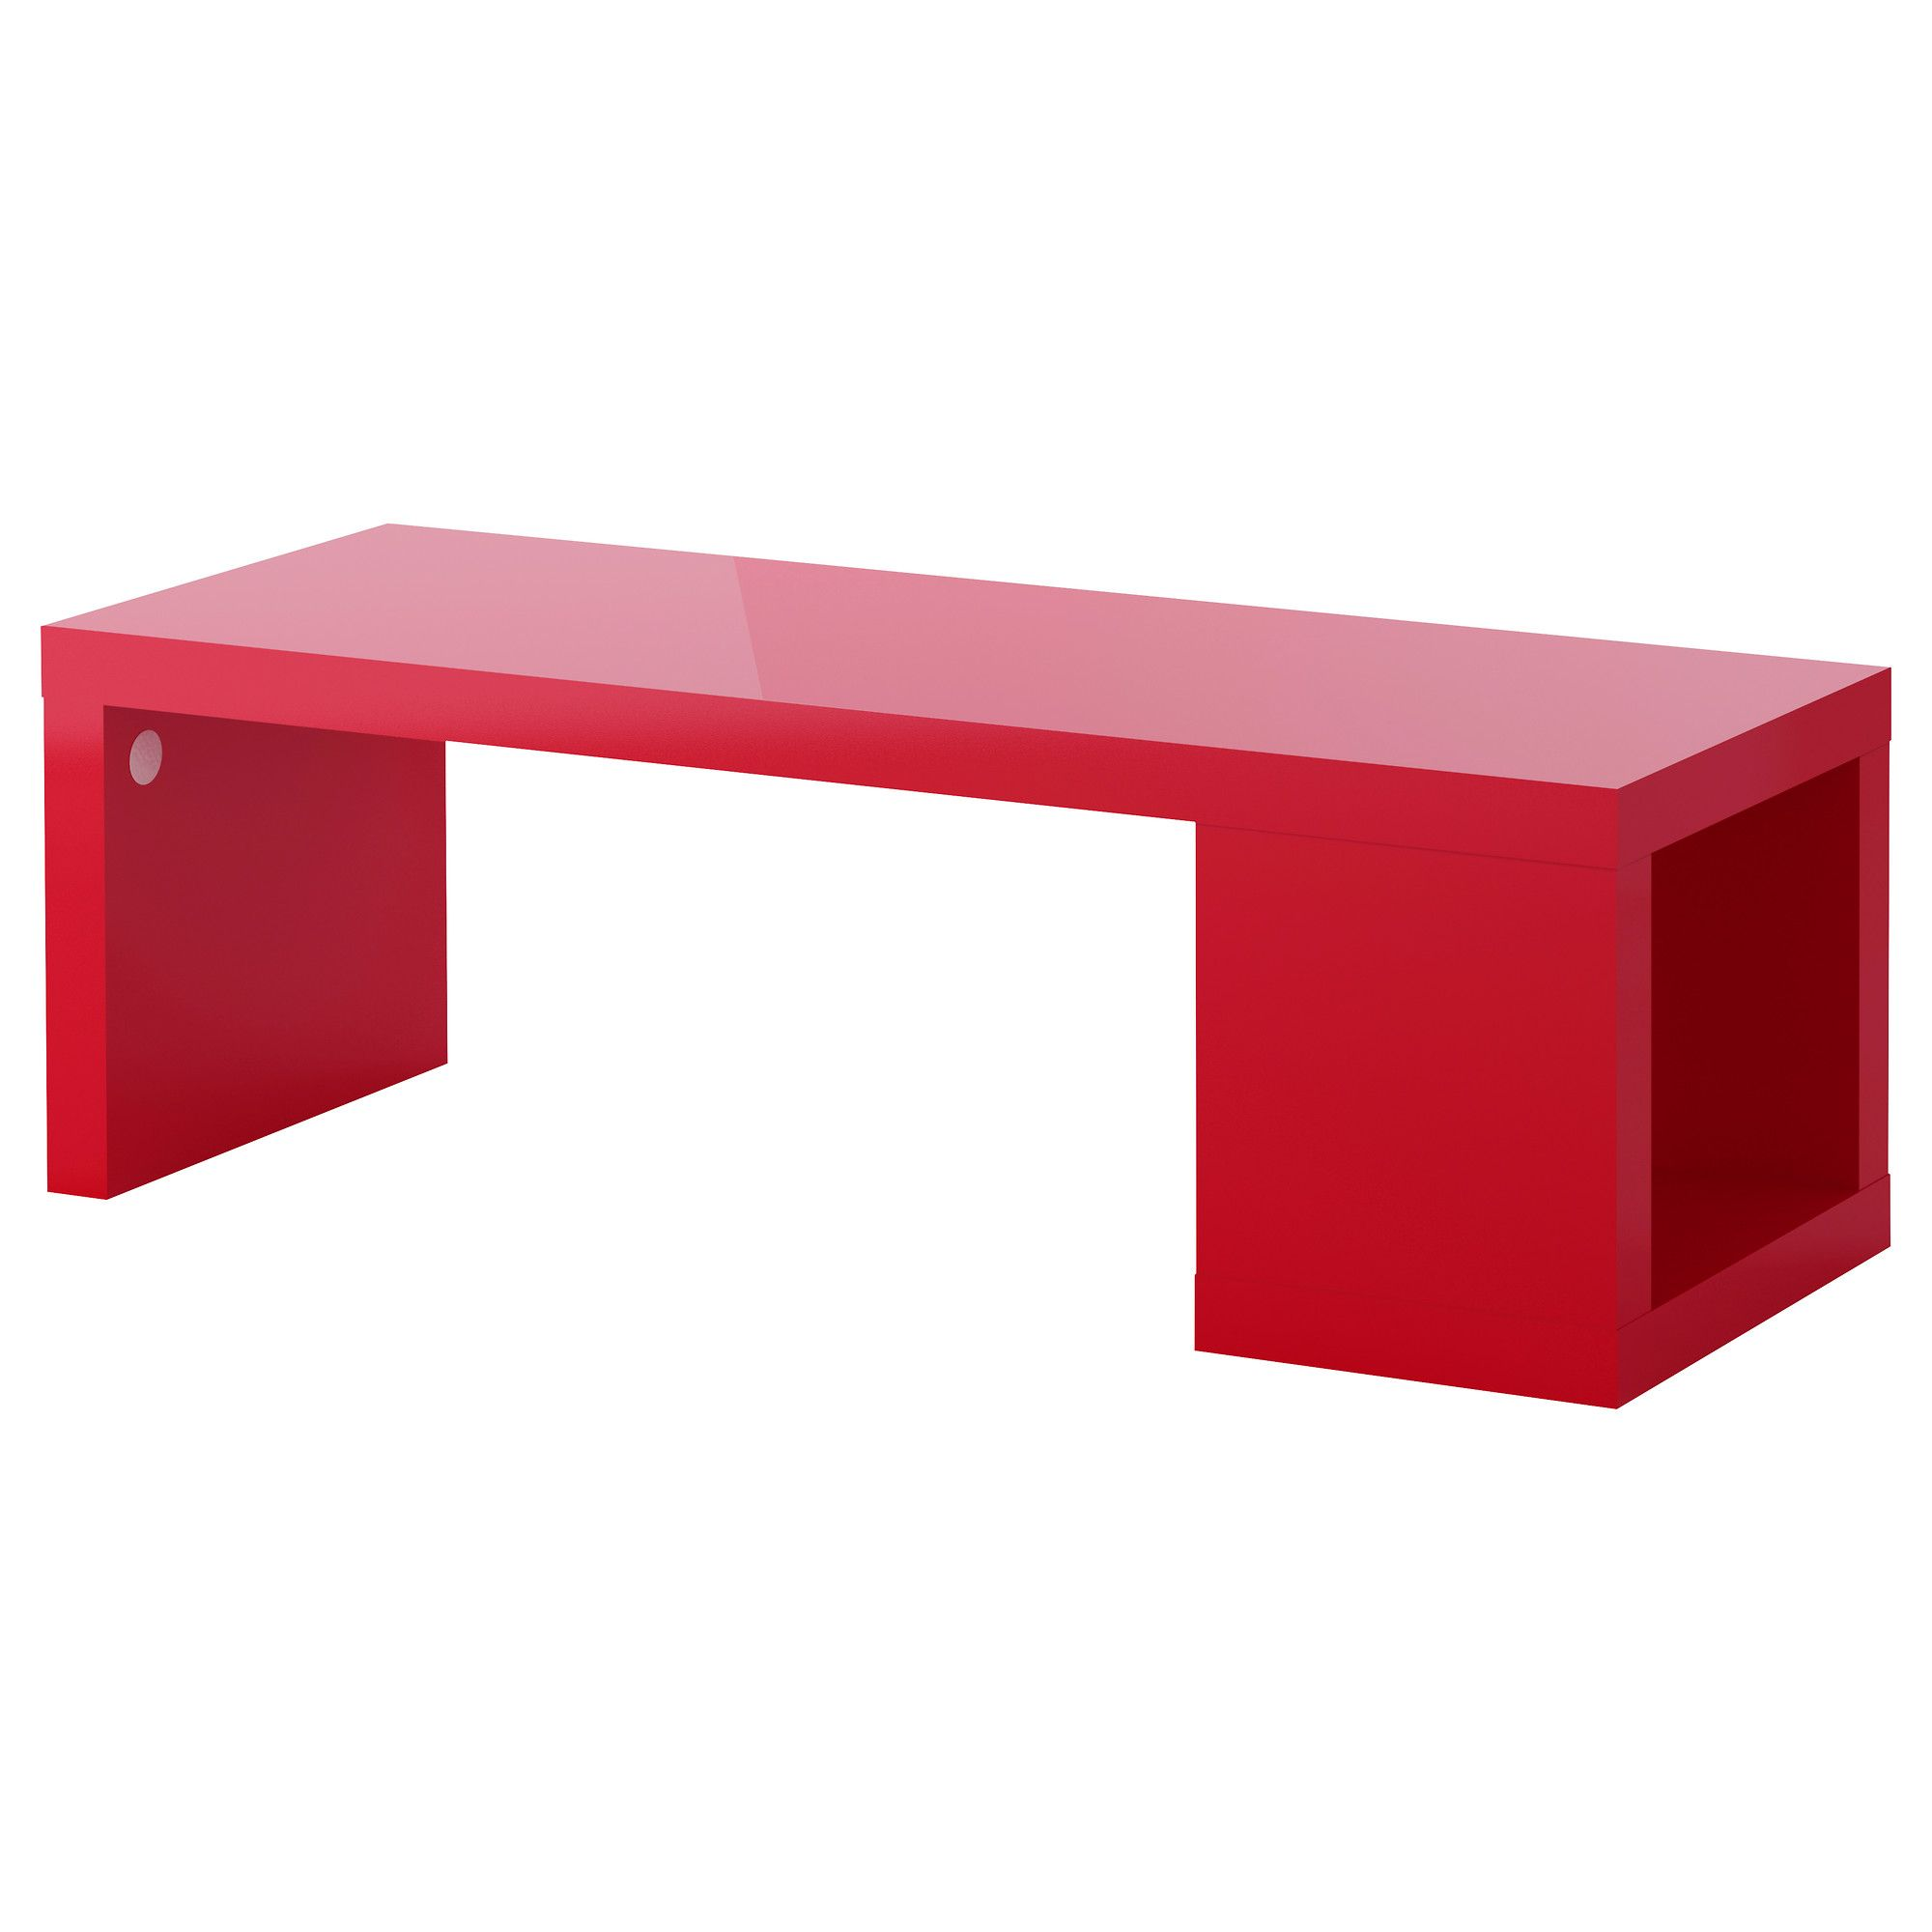 Table Basse Ikea Rouge Lack Salontafel Hoogglans Rood Ikea 49 95 Z Cheap